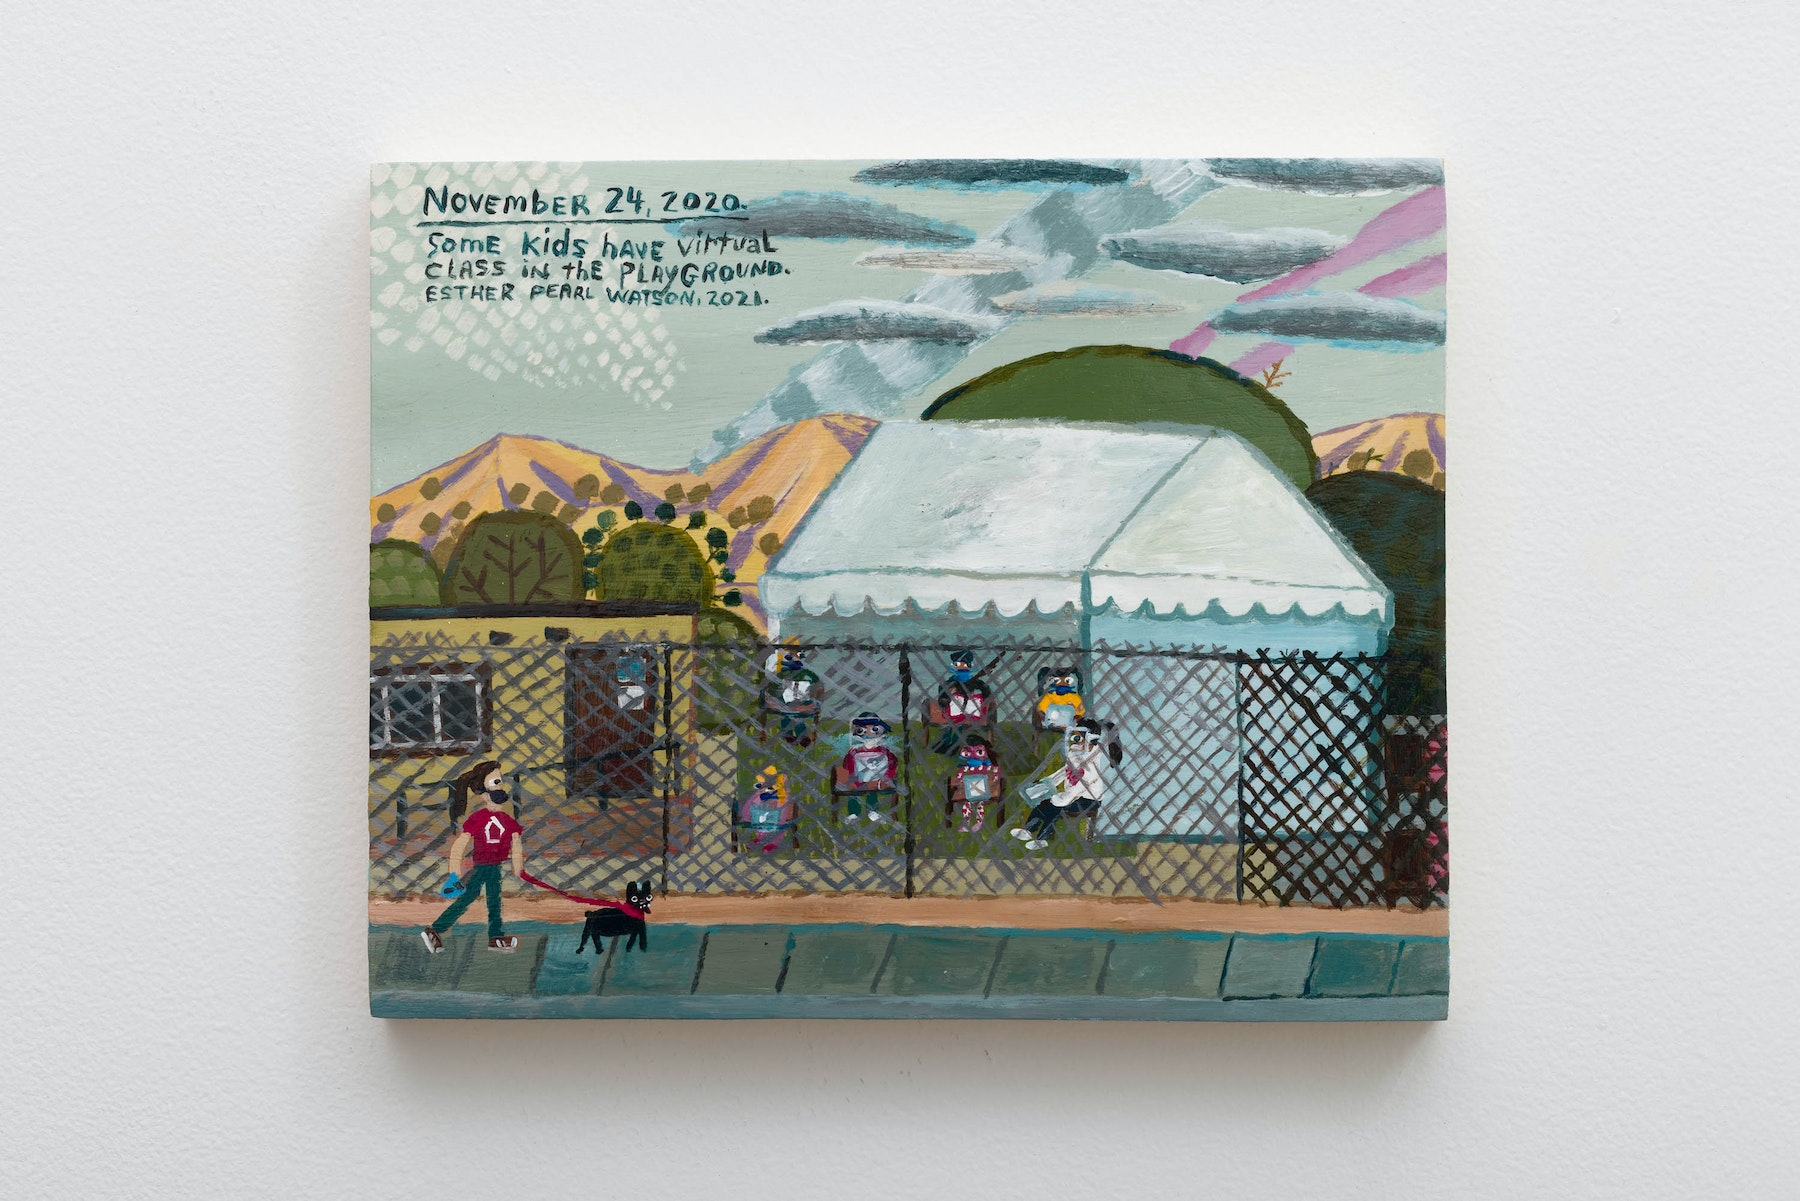 """Esther Pearl Watson """"November 24, Virtual Class in the Playground,"""" 2020 Acrylic on panel 8"""" x 10"""" x ⁷⁄₈"""" [HxWxD] (20.32 x 25.4 x 2.21 cm) Inventory #EPW393 Courtesy of the artist and Vielmetter Los Angeles Photo credit: Jeff McLane Signed and dated on back"""